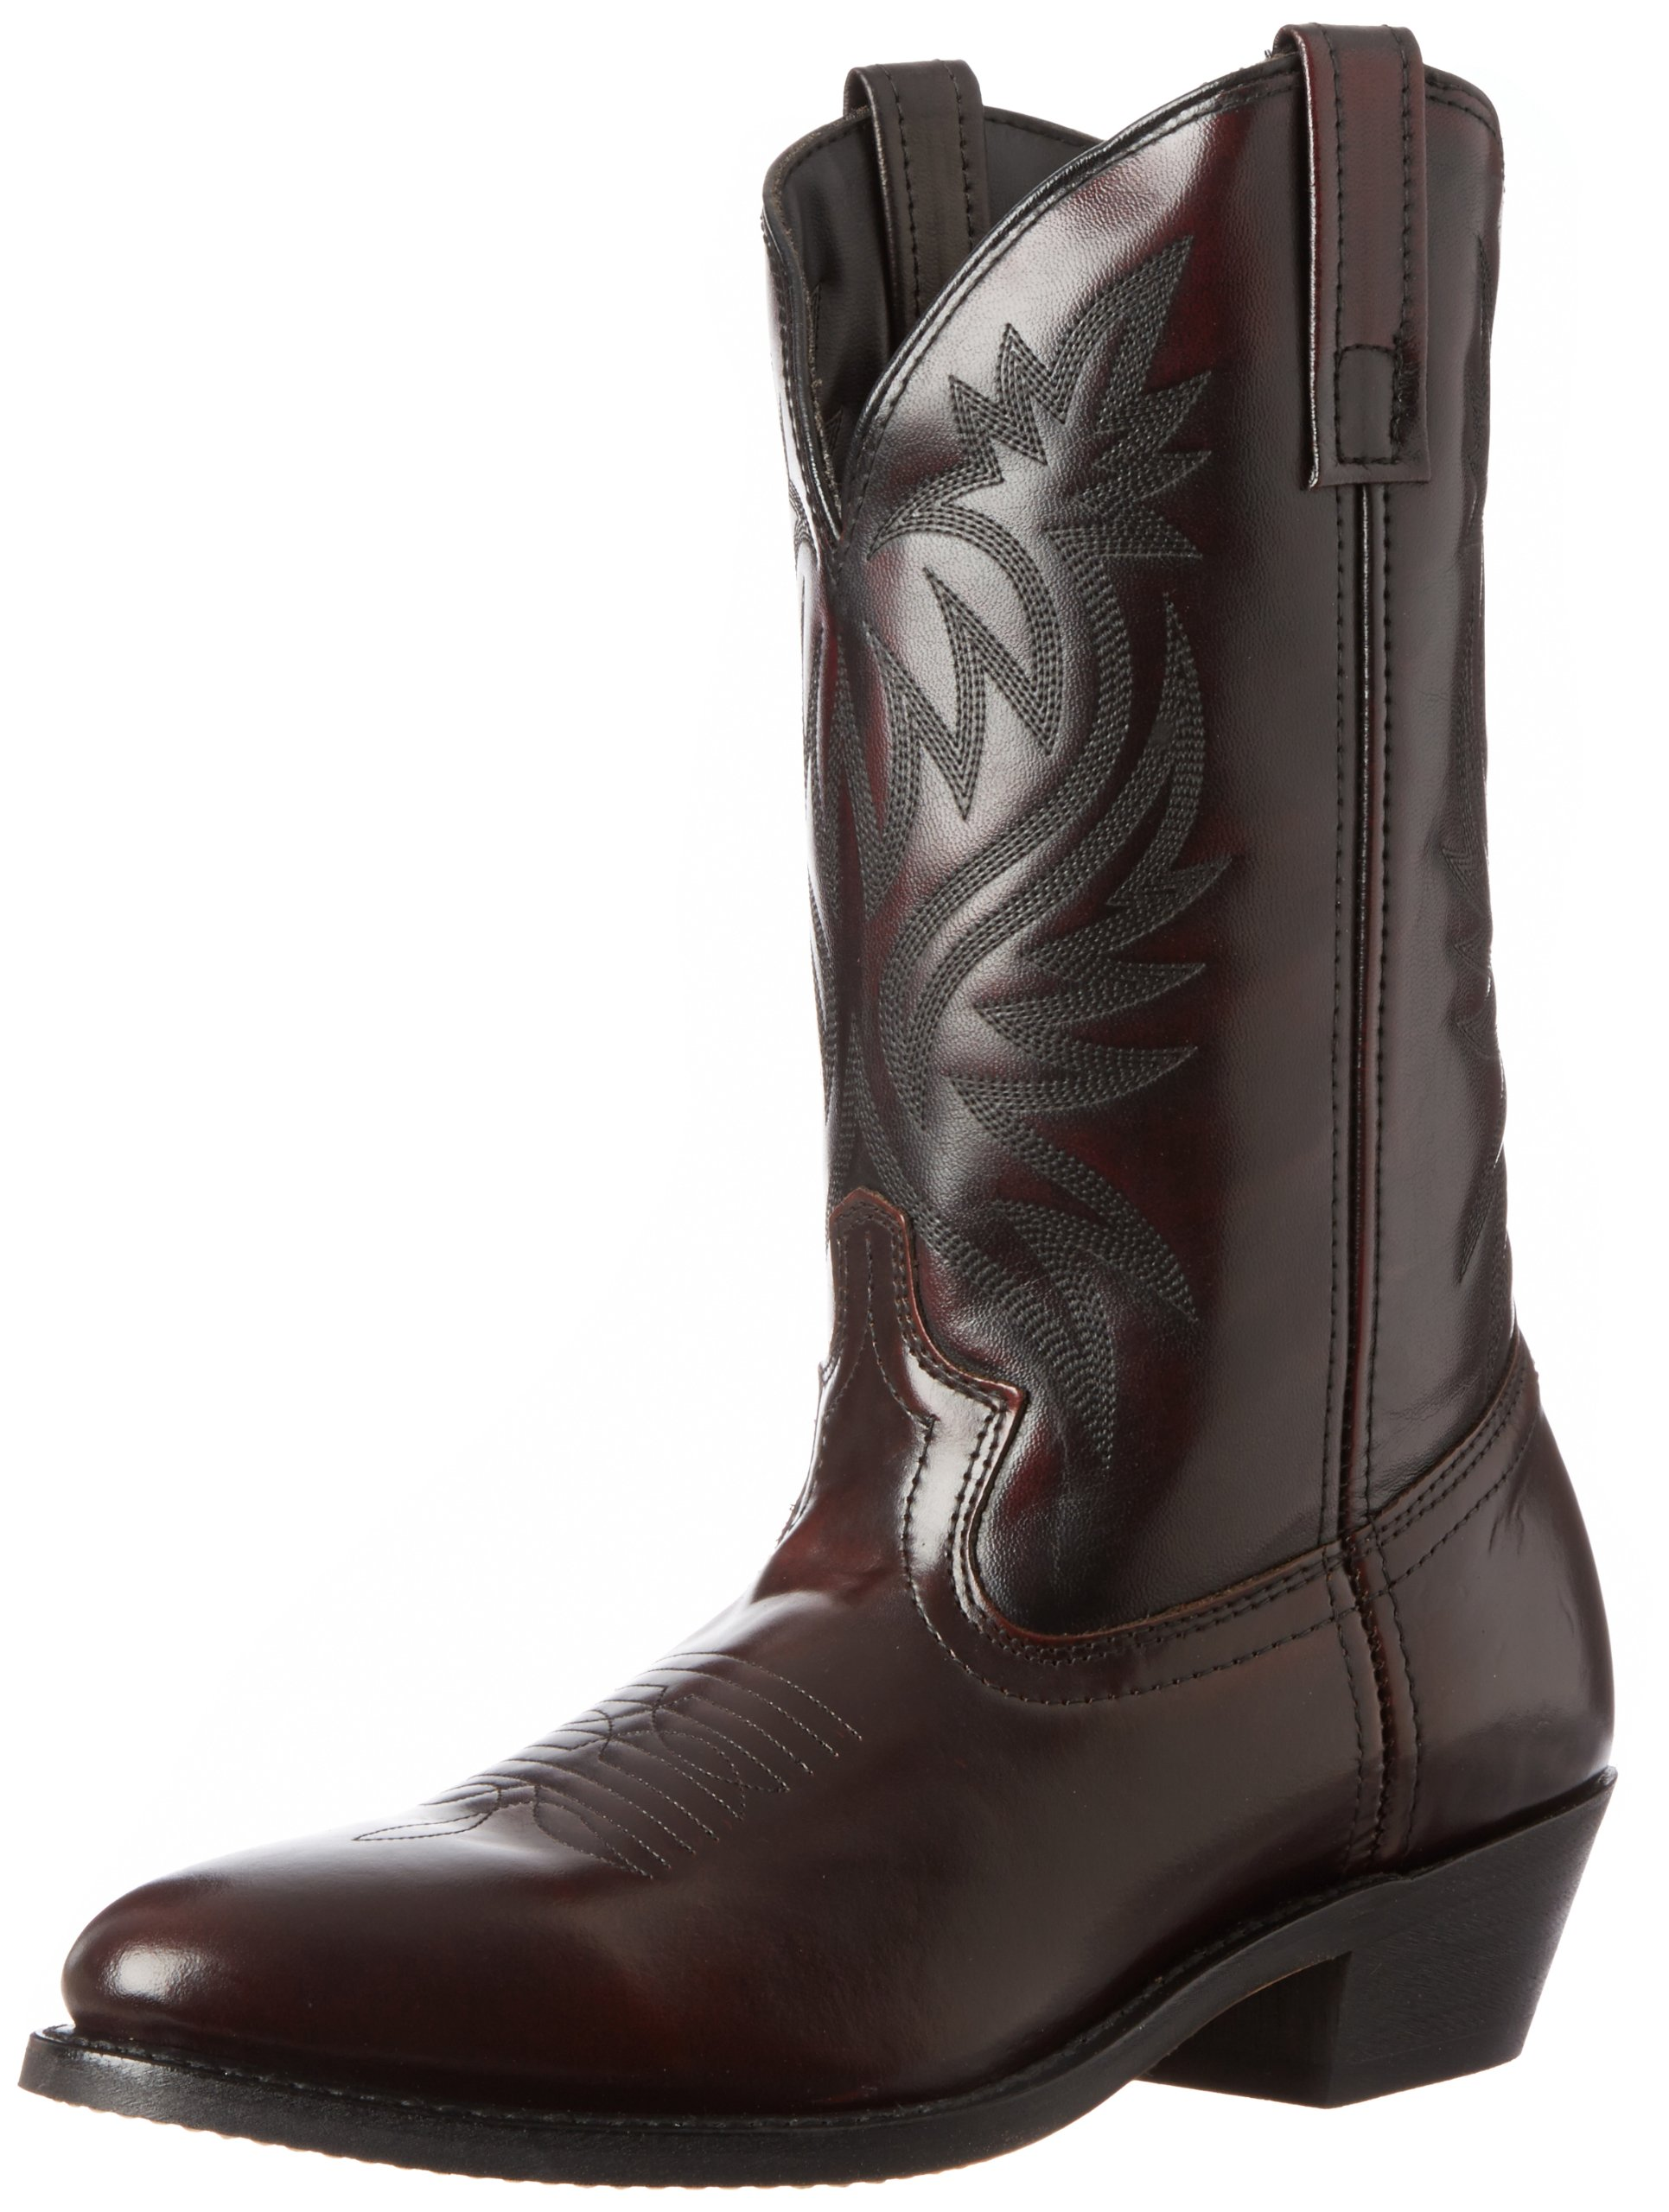 Laredo Men's London Western Boot,Black Cherry,8 D US by Laredo